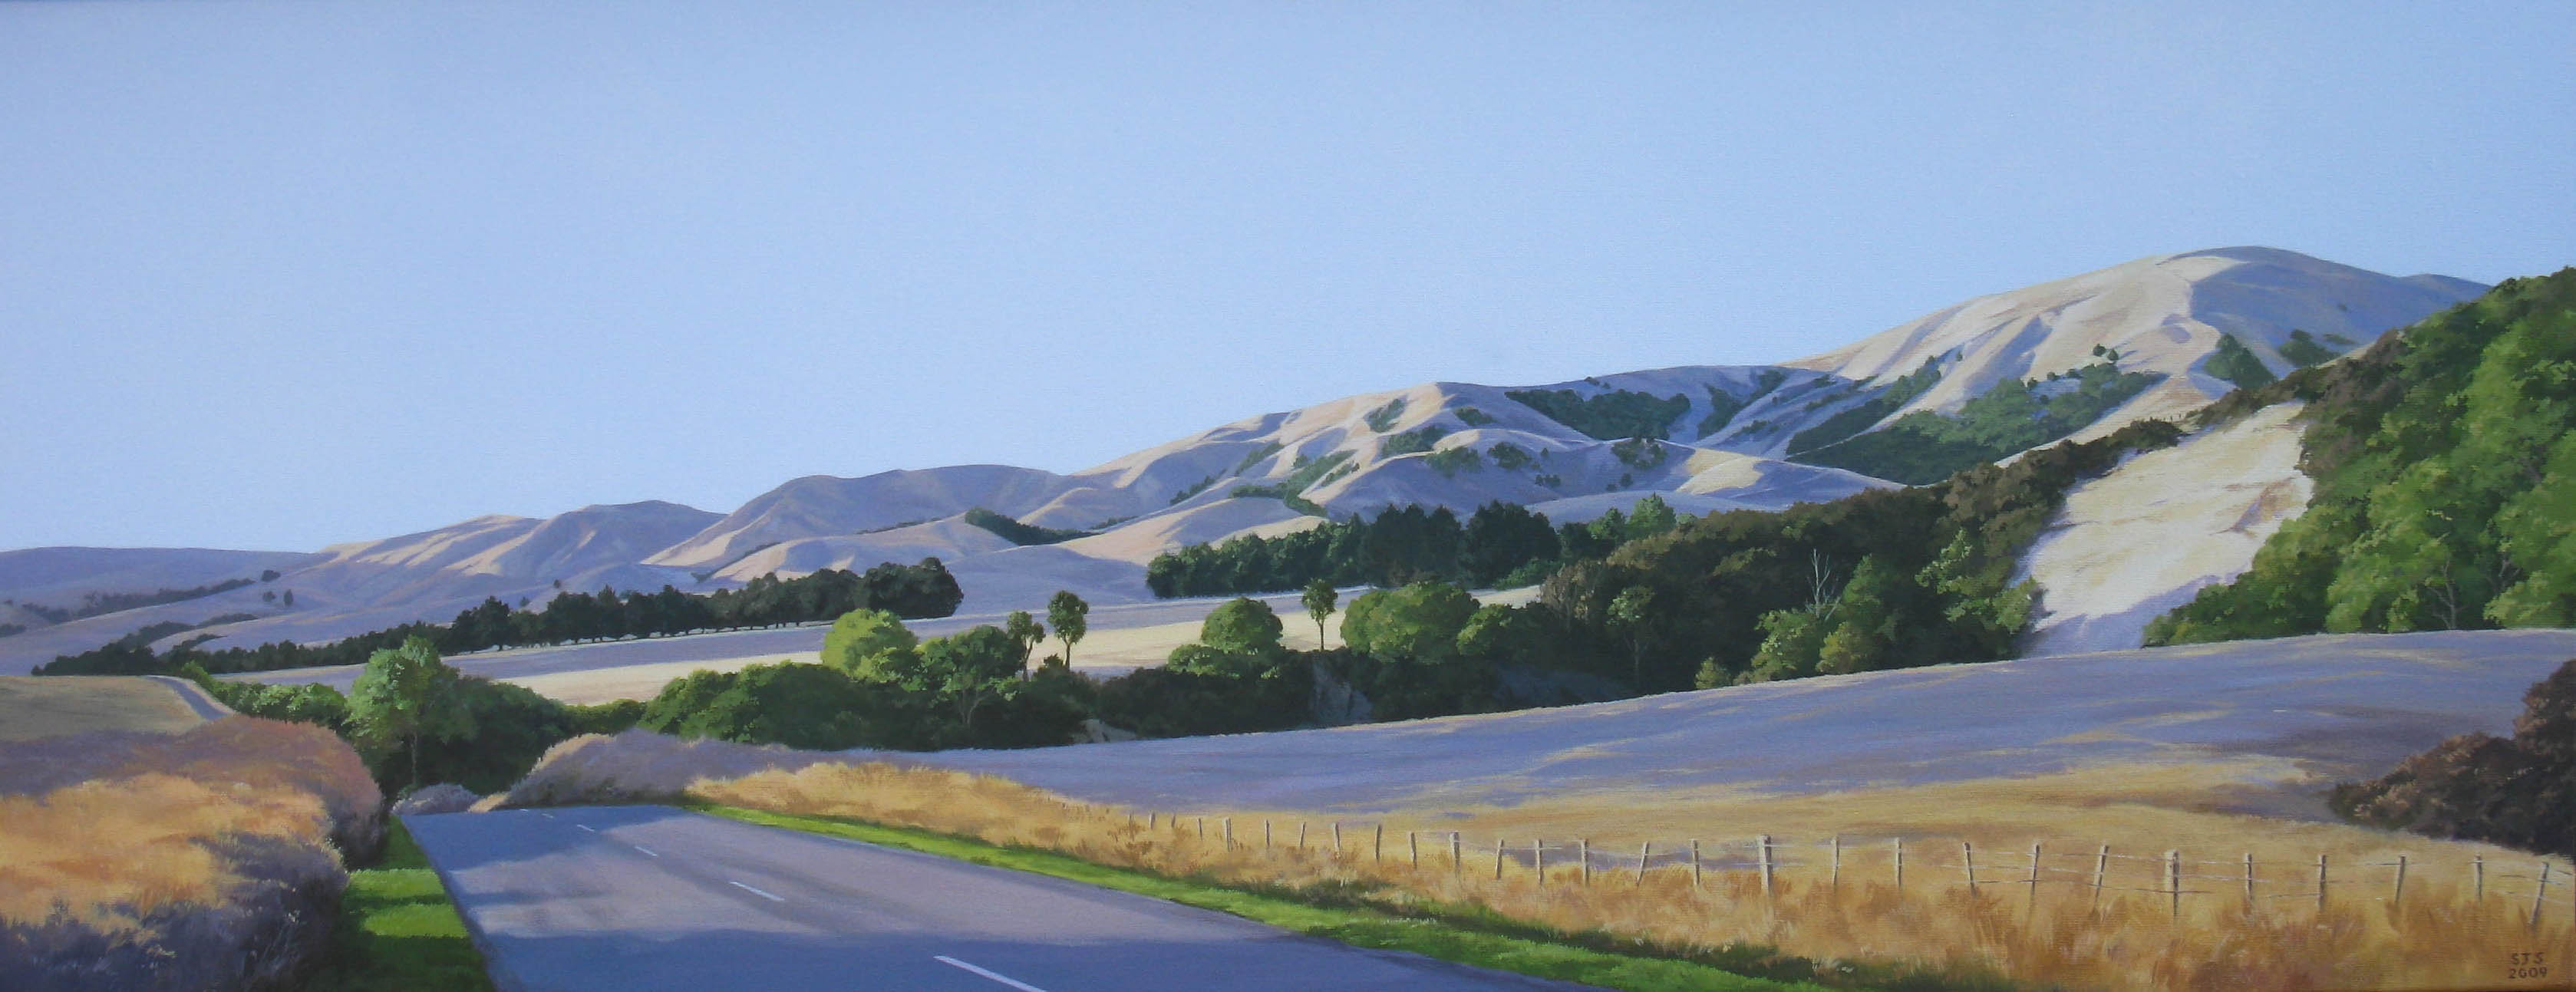 Summer Shadows, Wairarapa